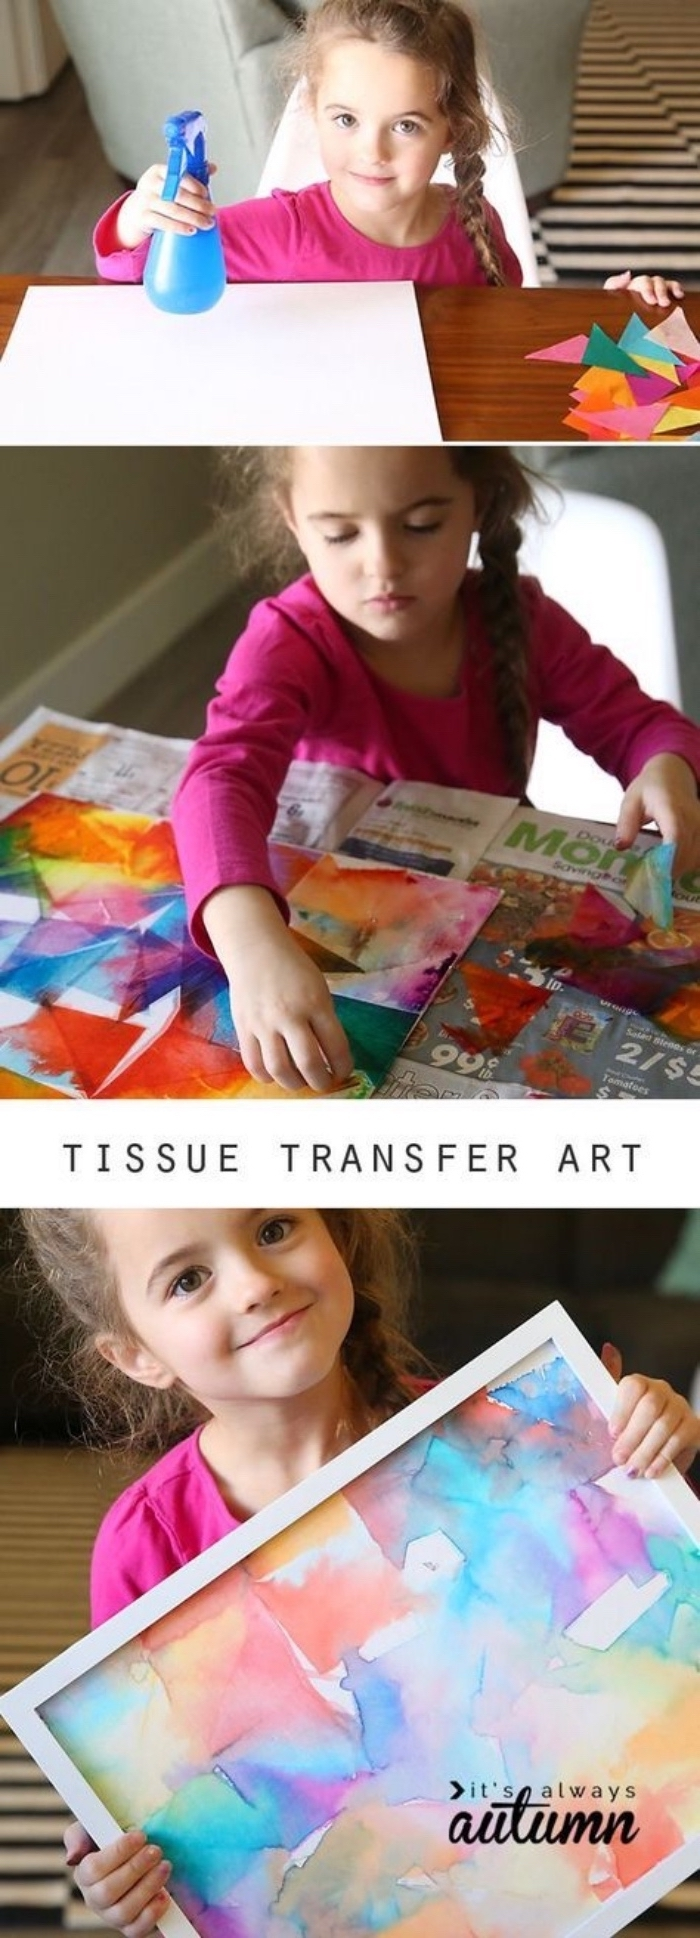 tissue transfer art, preschool classroom games, girl painting, in a white frame, step by step, diy tutorial